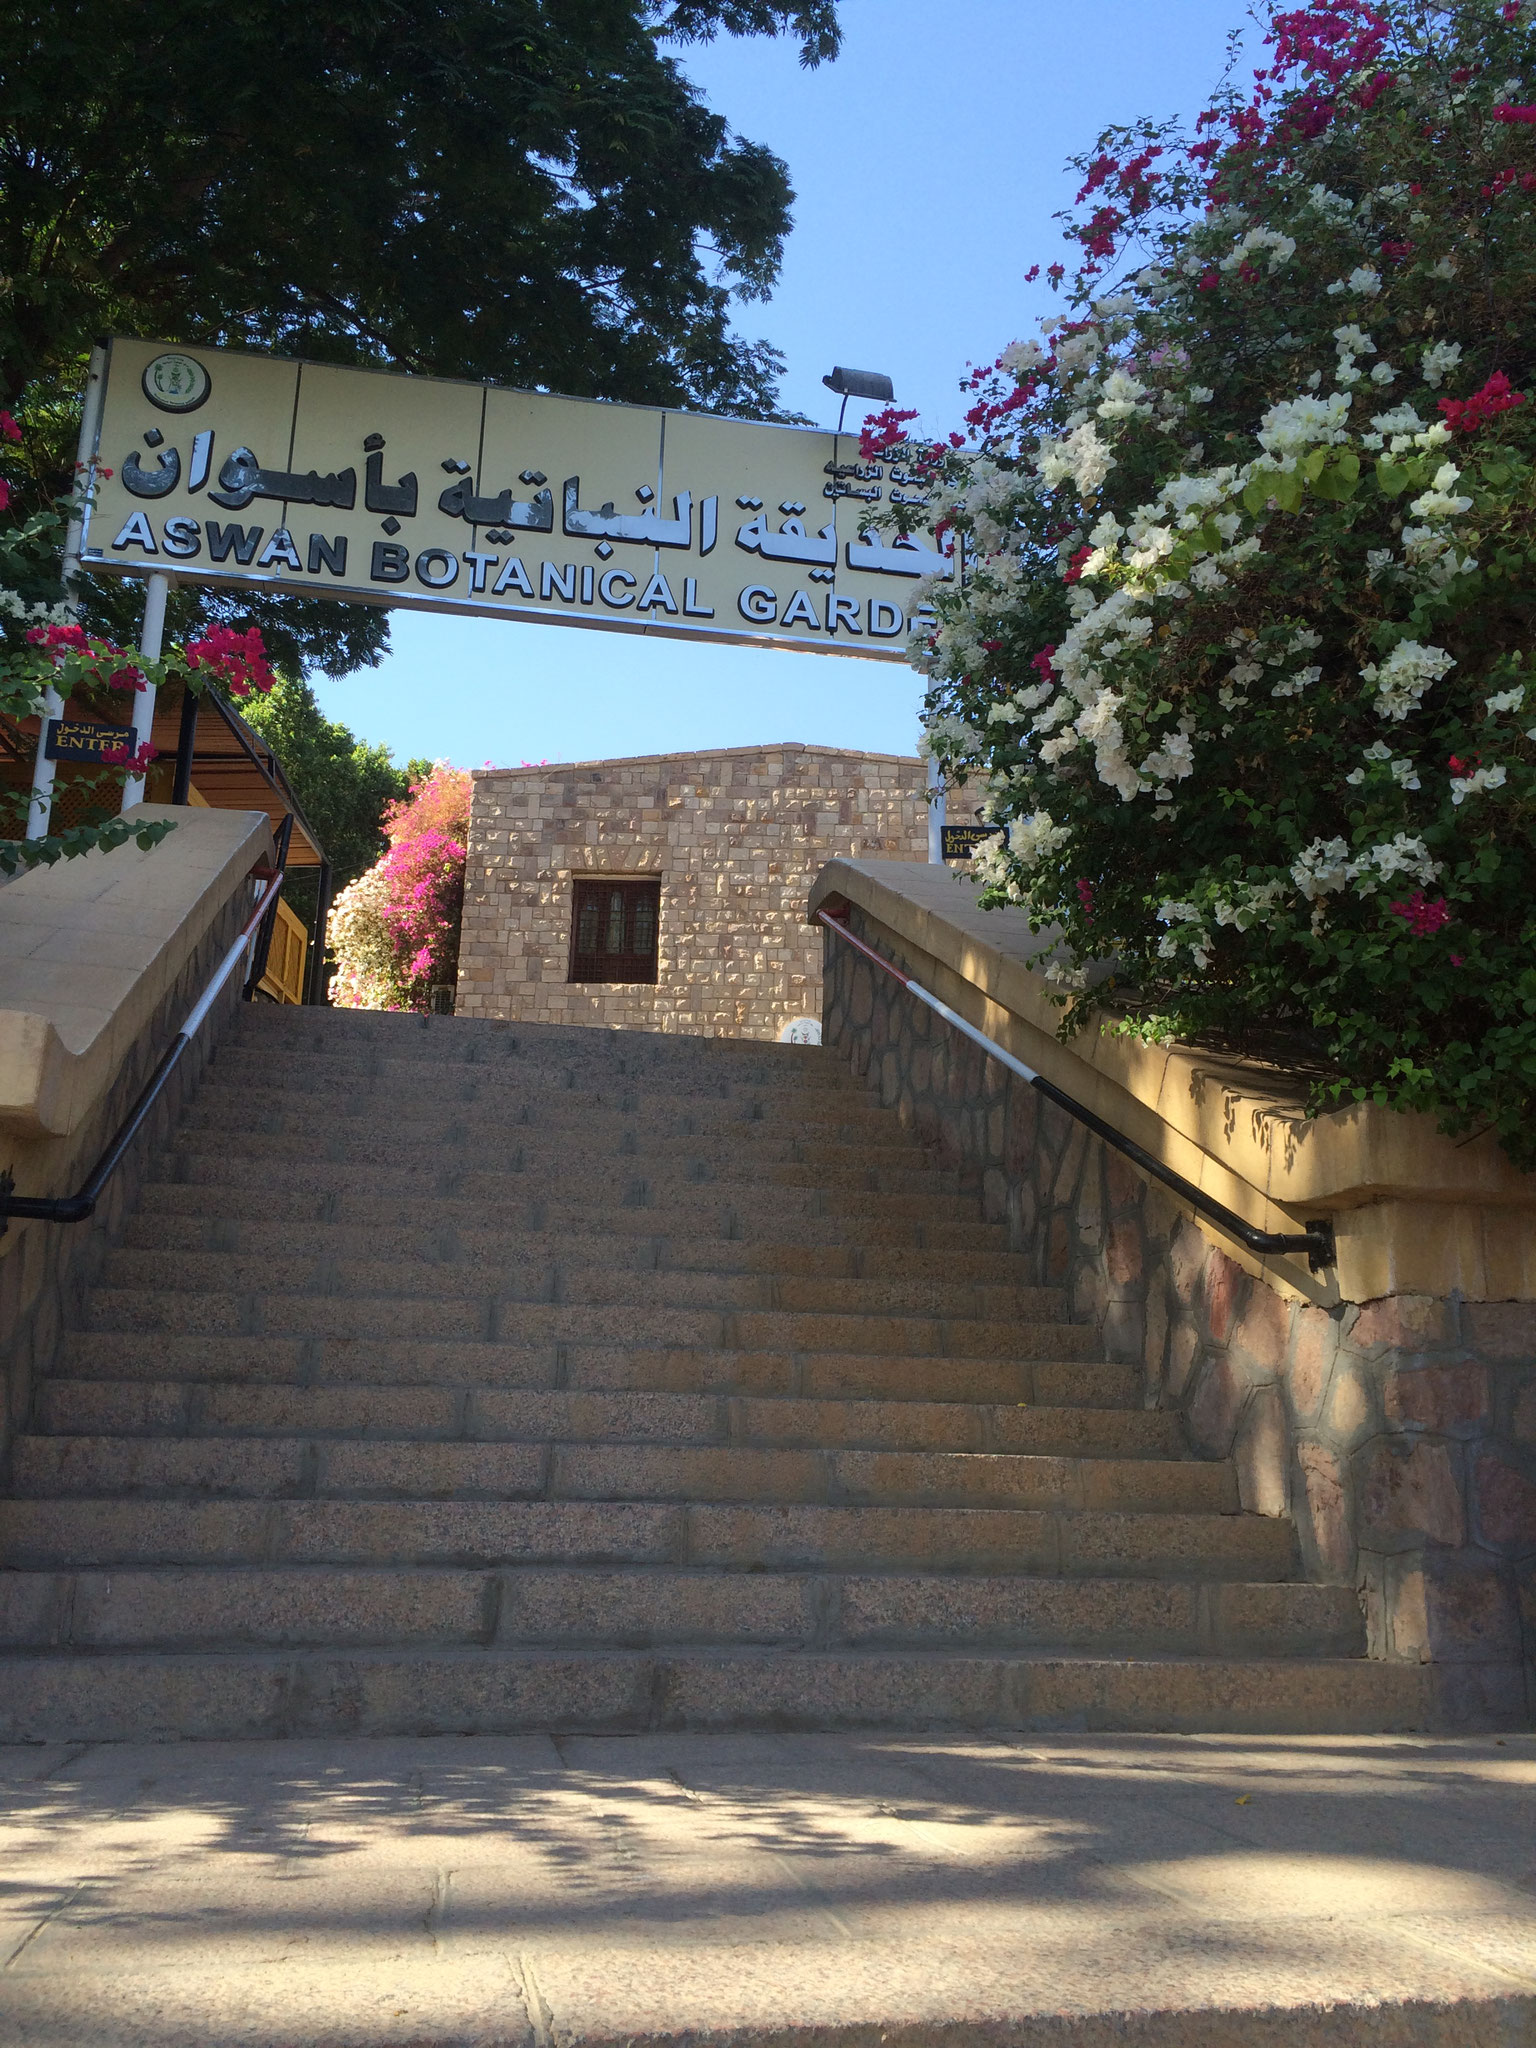 Botanical Garden in Aswan